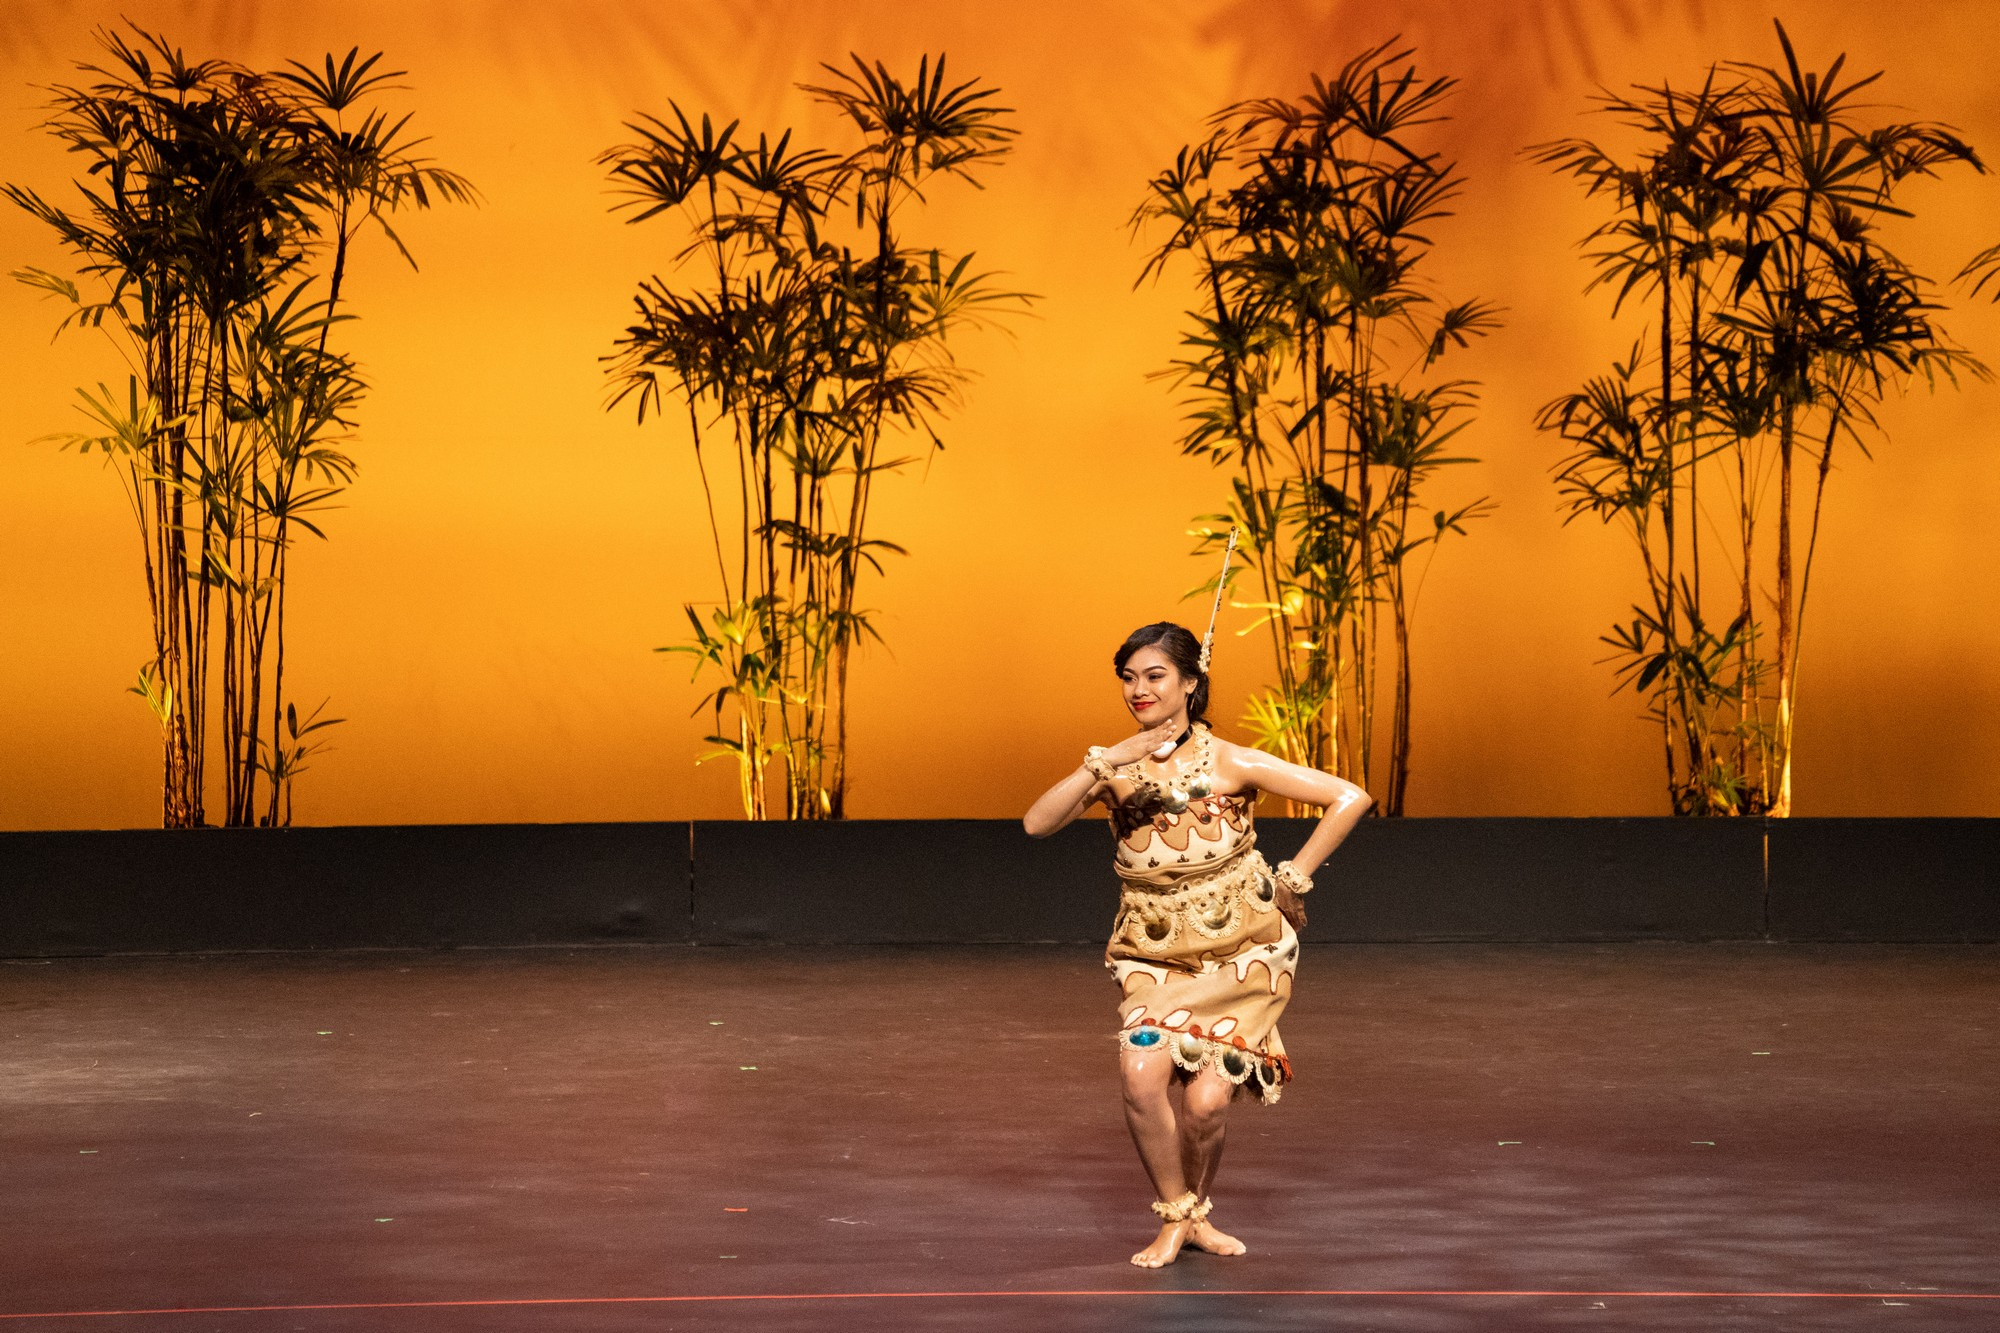 Solo woman dancing on stage, traditional tapa attire.